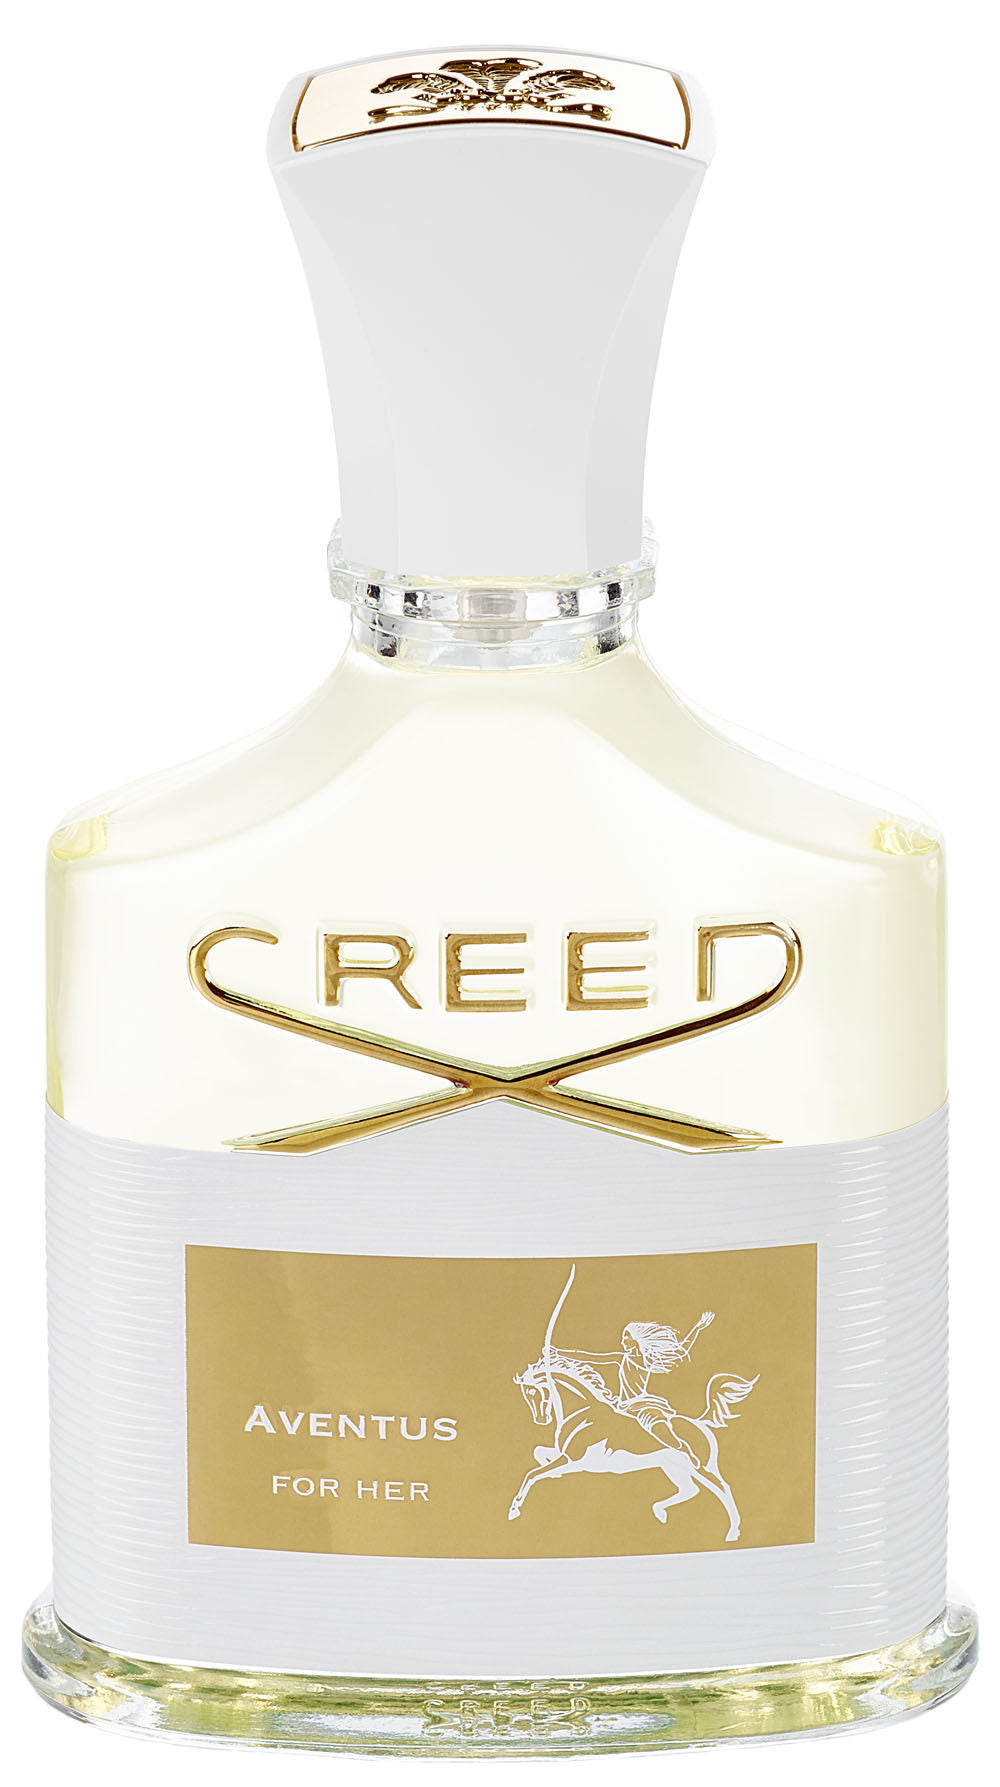 CREED: Aventus for Her 75ml